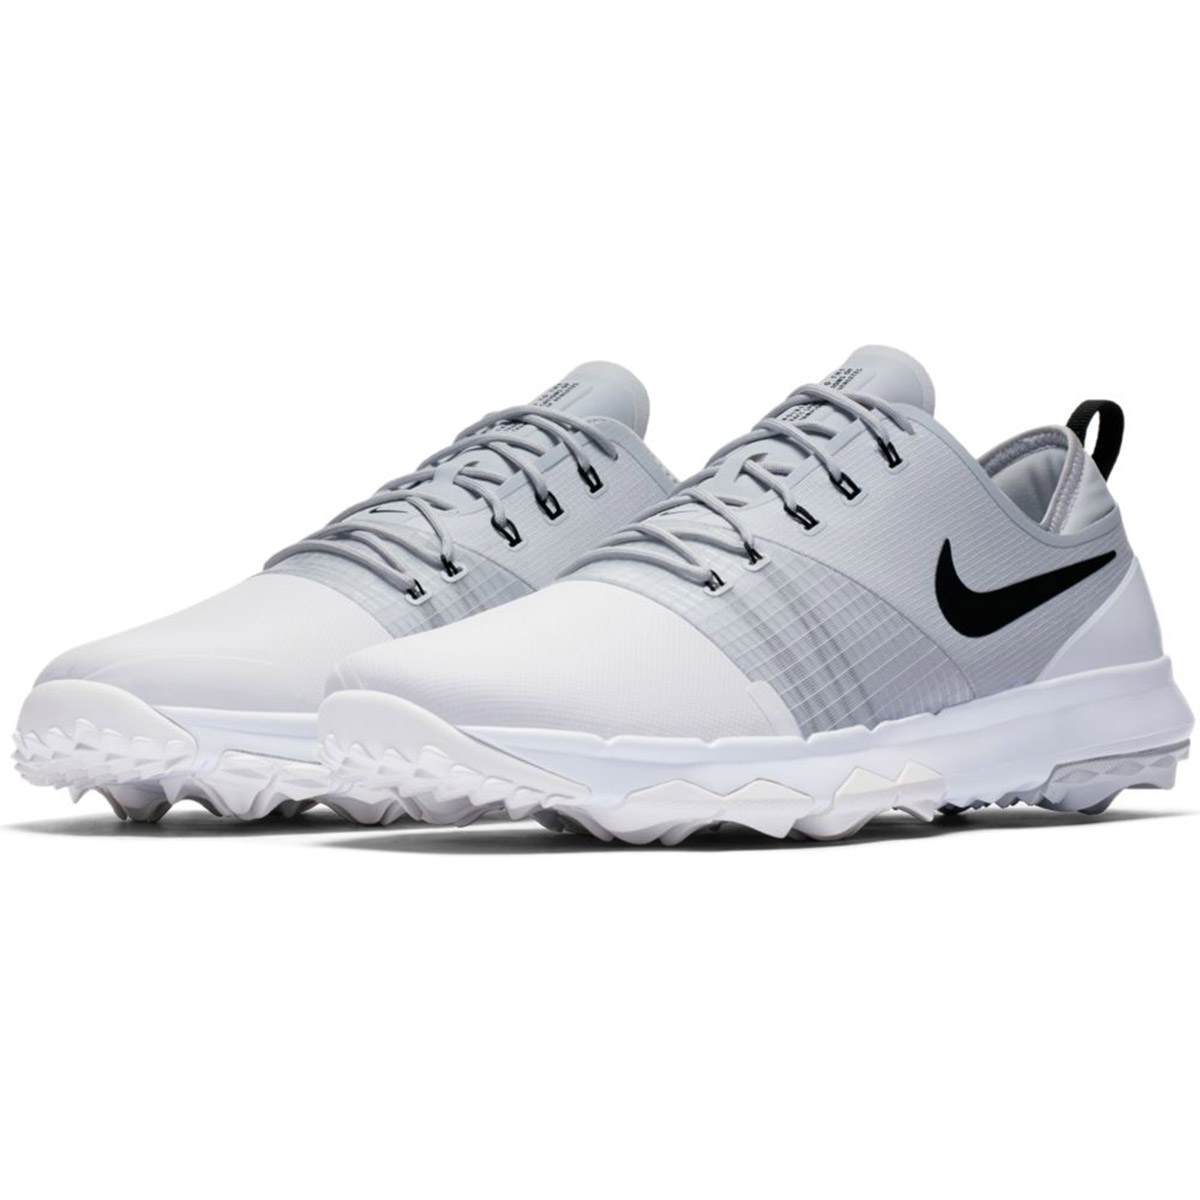 Nike Golf FI Impact 3 Shoes from